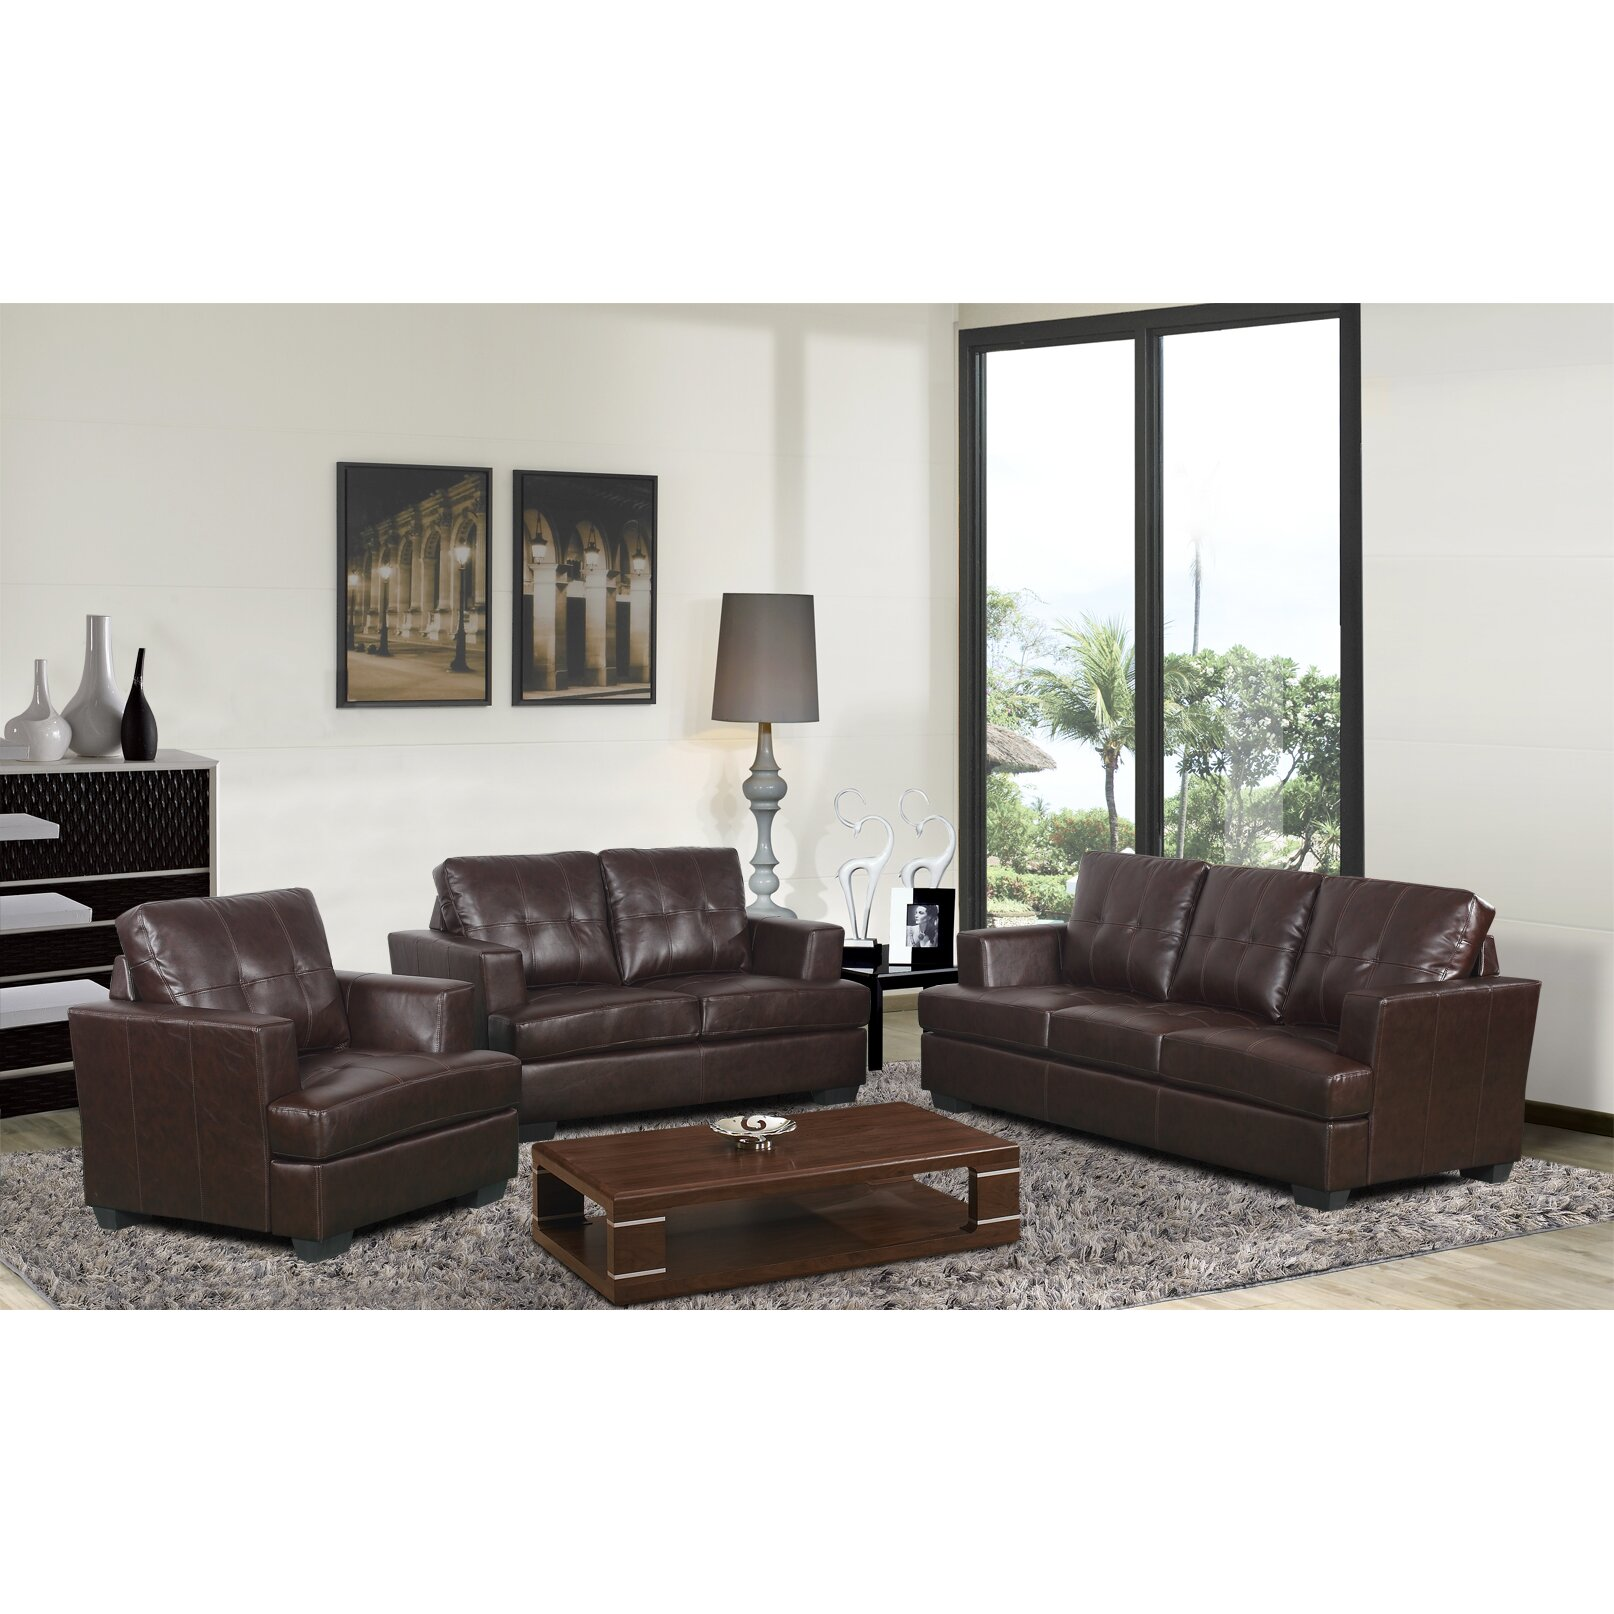 Living Room Collection Furniture Beverly Fine Furniture Cecilia Living Room Collection Reviews